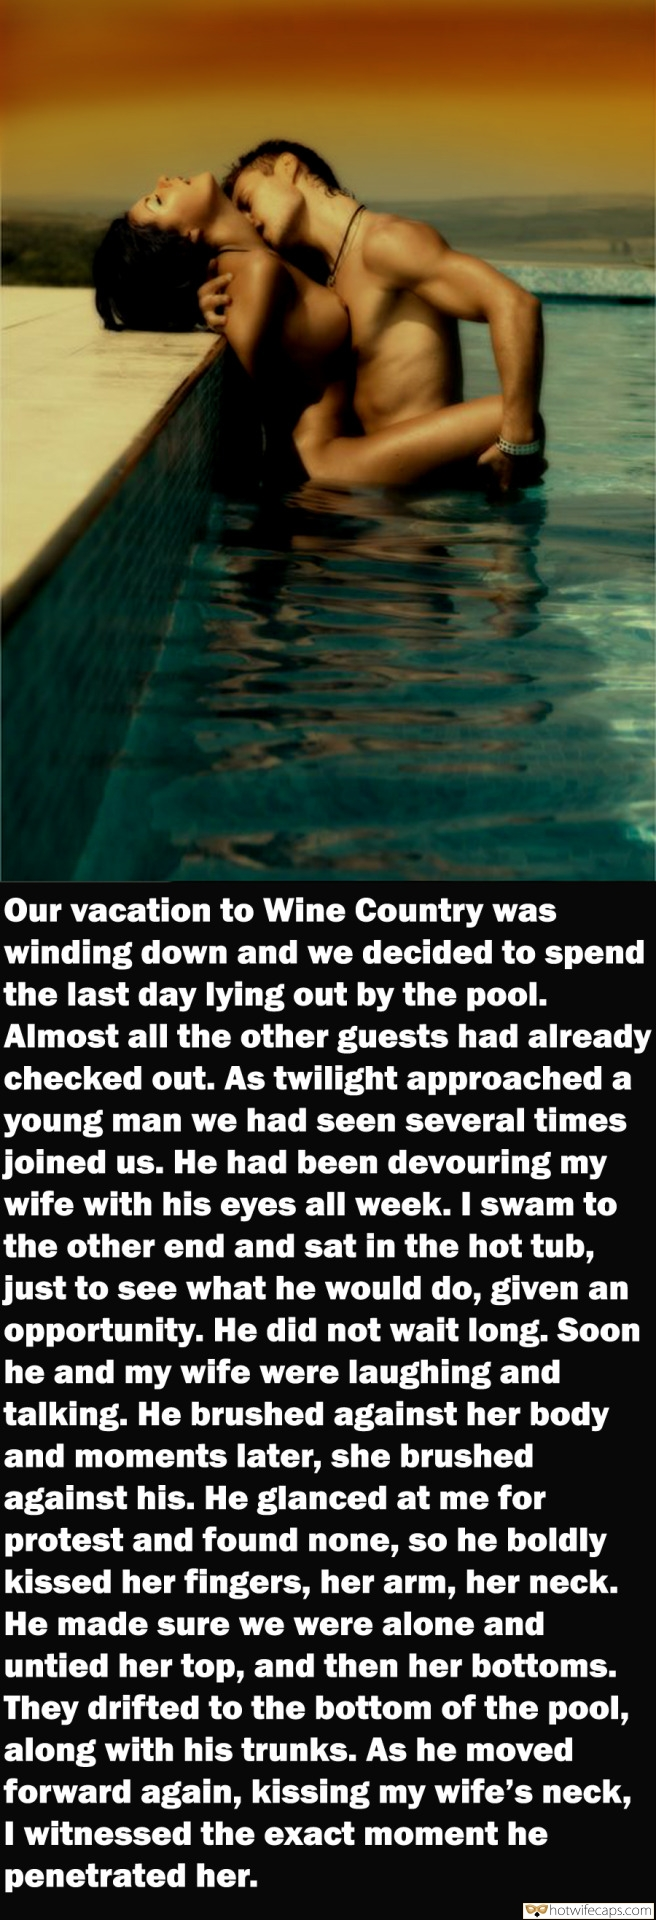 Vacation SFW Caps  hotwife caption: Our vacation to Wine Country was winding down and we decided to spend the last day lying out by the pool. Almost all the other guests had already checked out. As twilight approached a young man we had seen several...